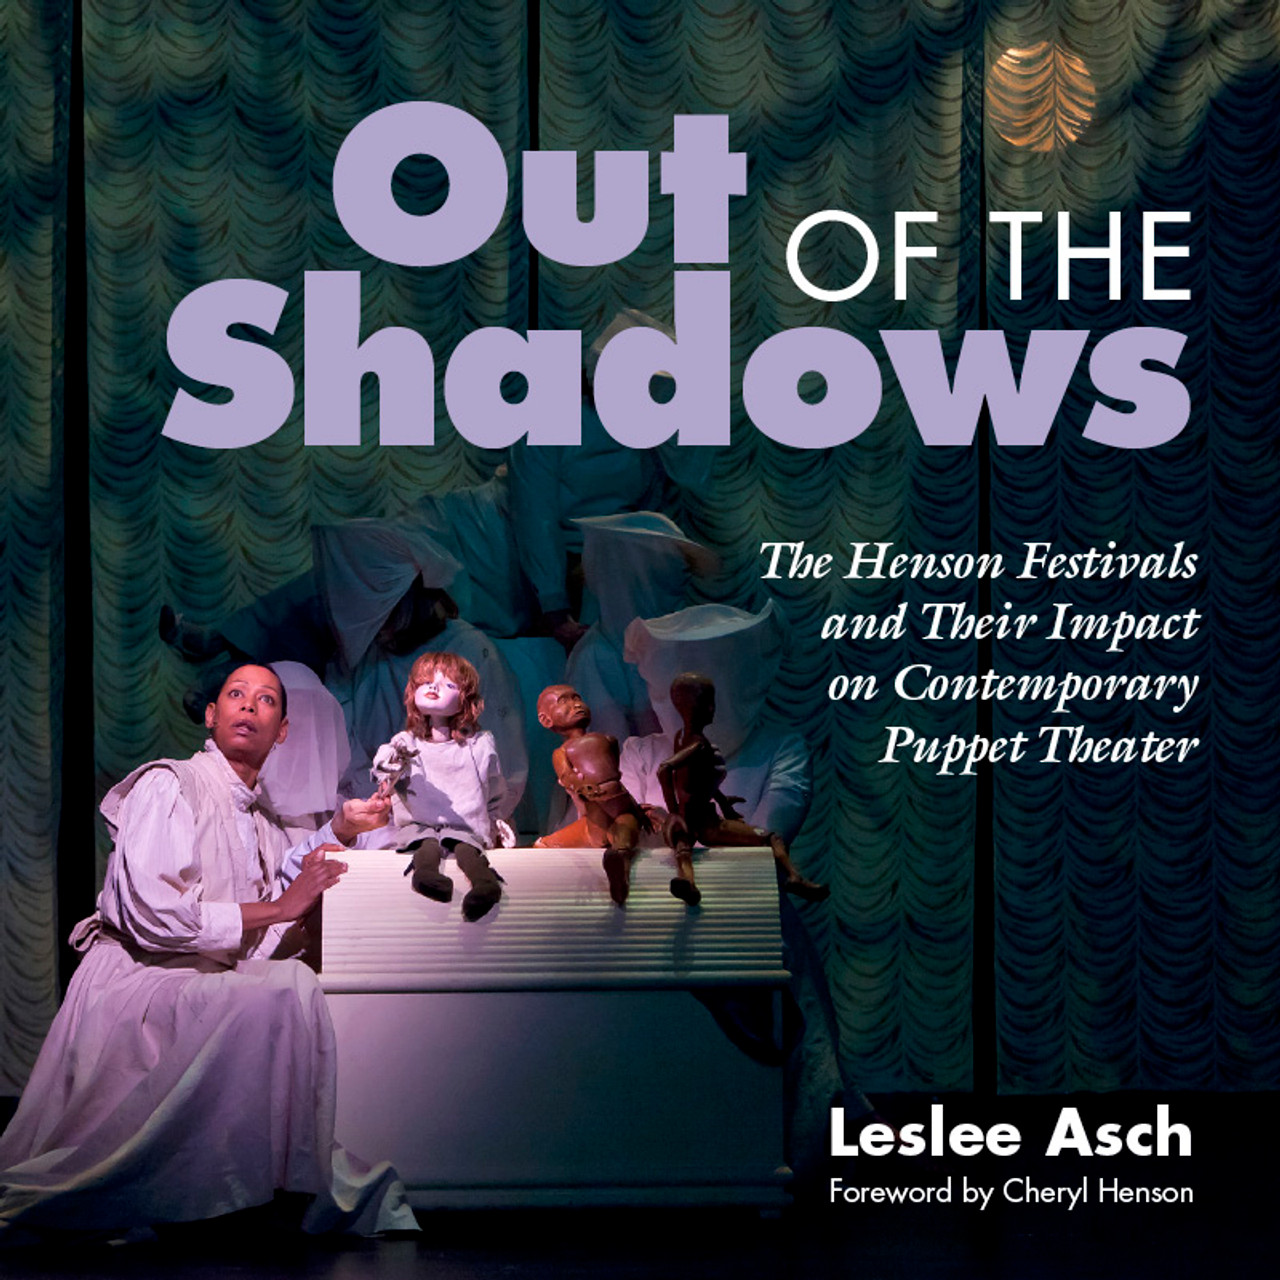 Out of the Shadows: The Henson Festivals and Their Impact on Contemporary Puppet Theater